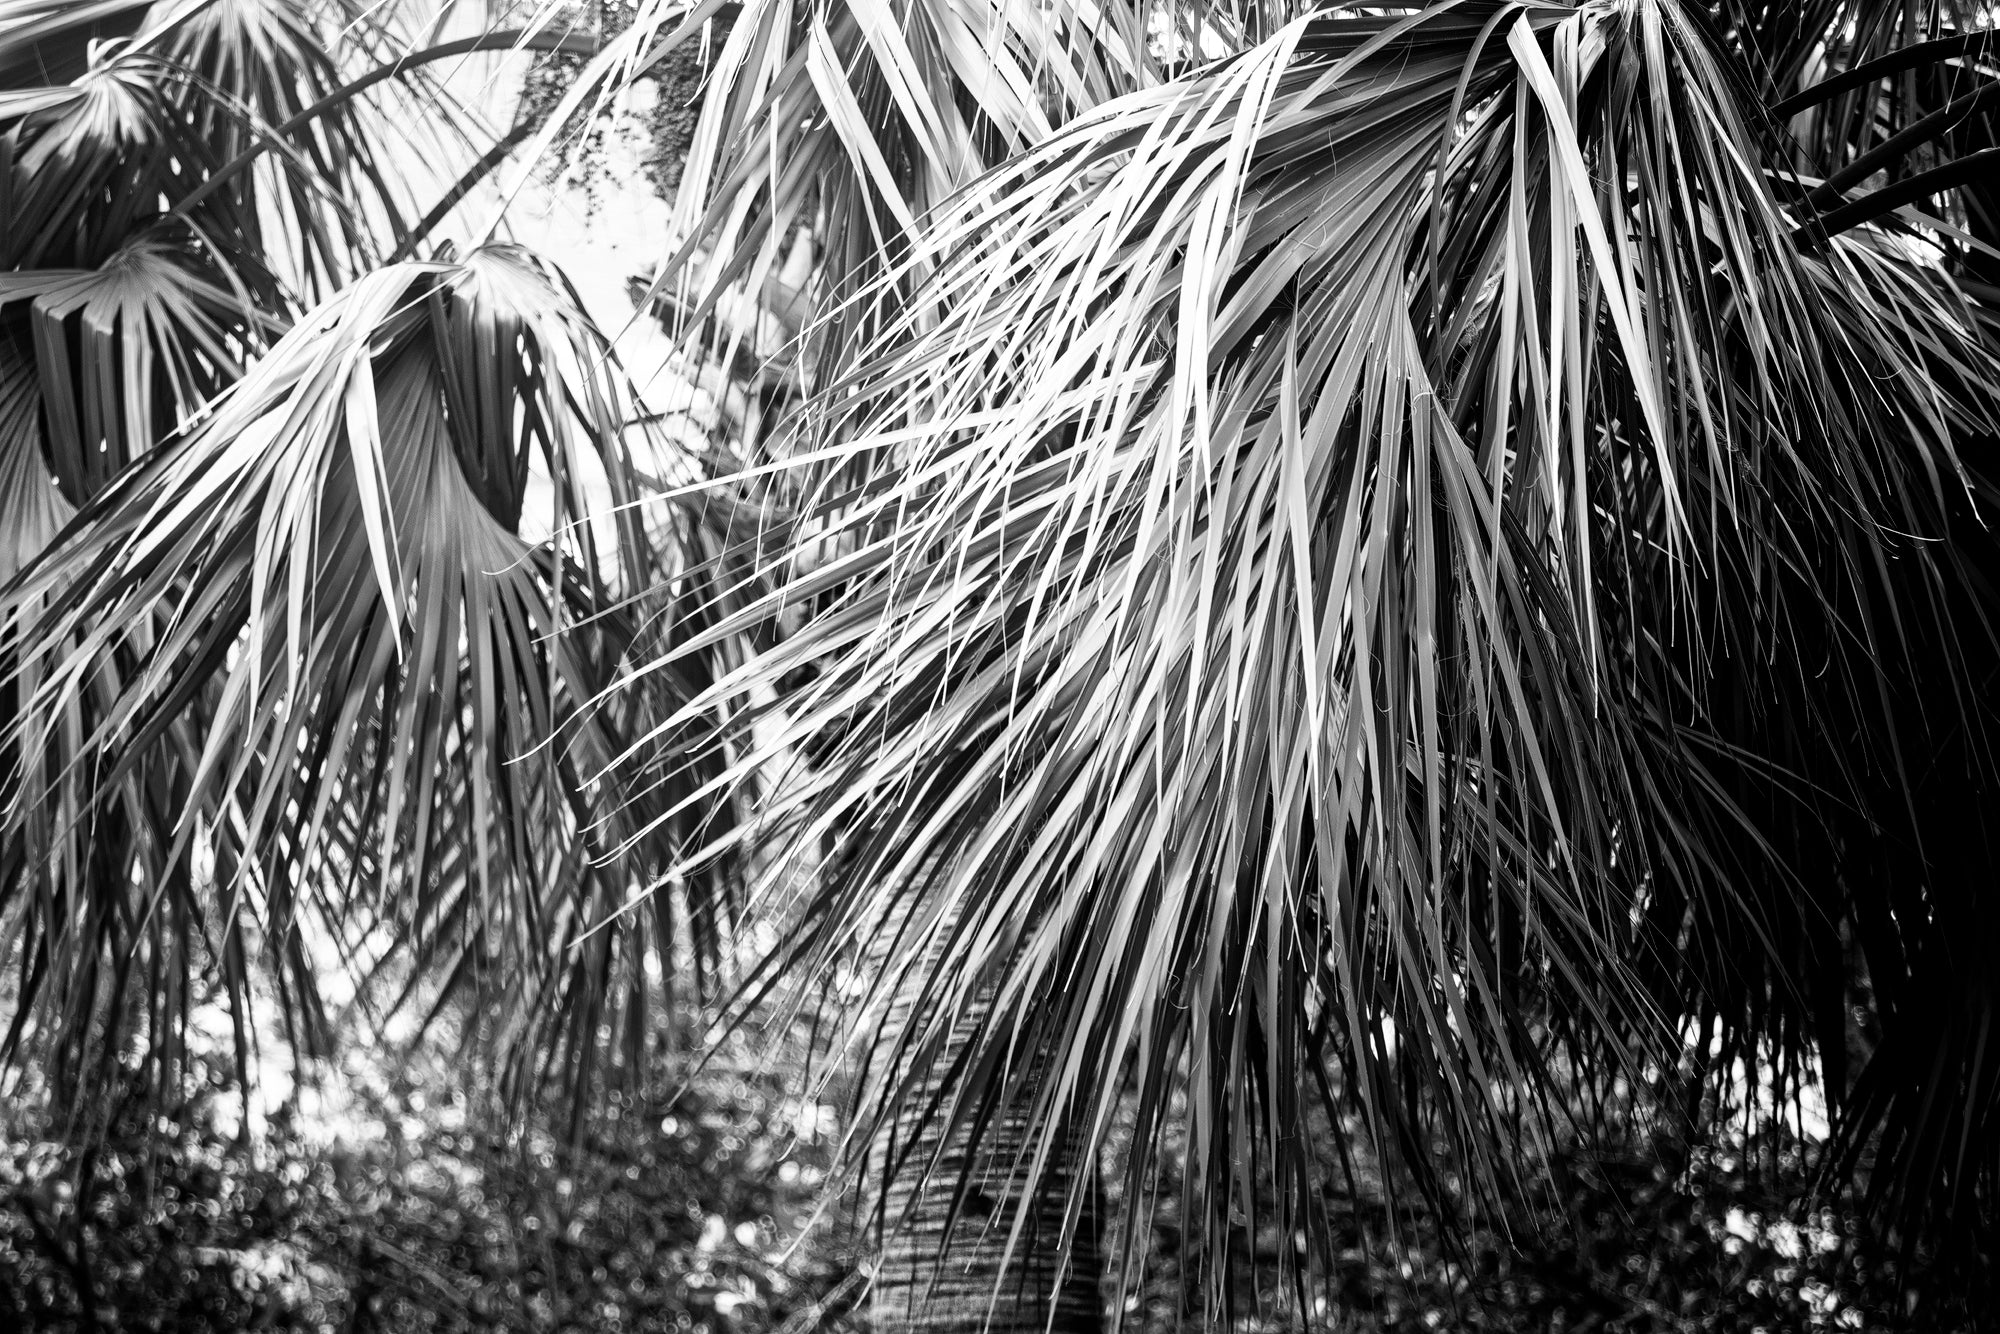 Palm Tree Abstraction - Black and White Photograph by Keith Dotson. Buy a fine art print.